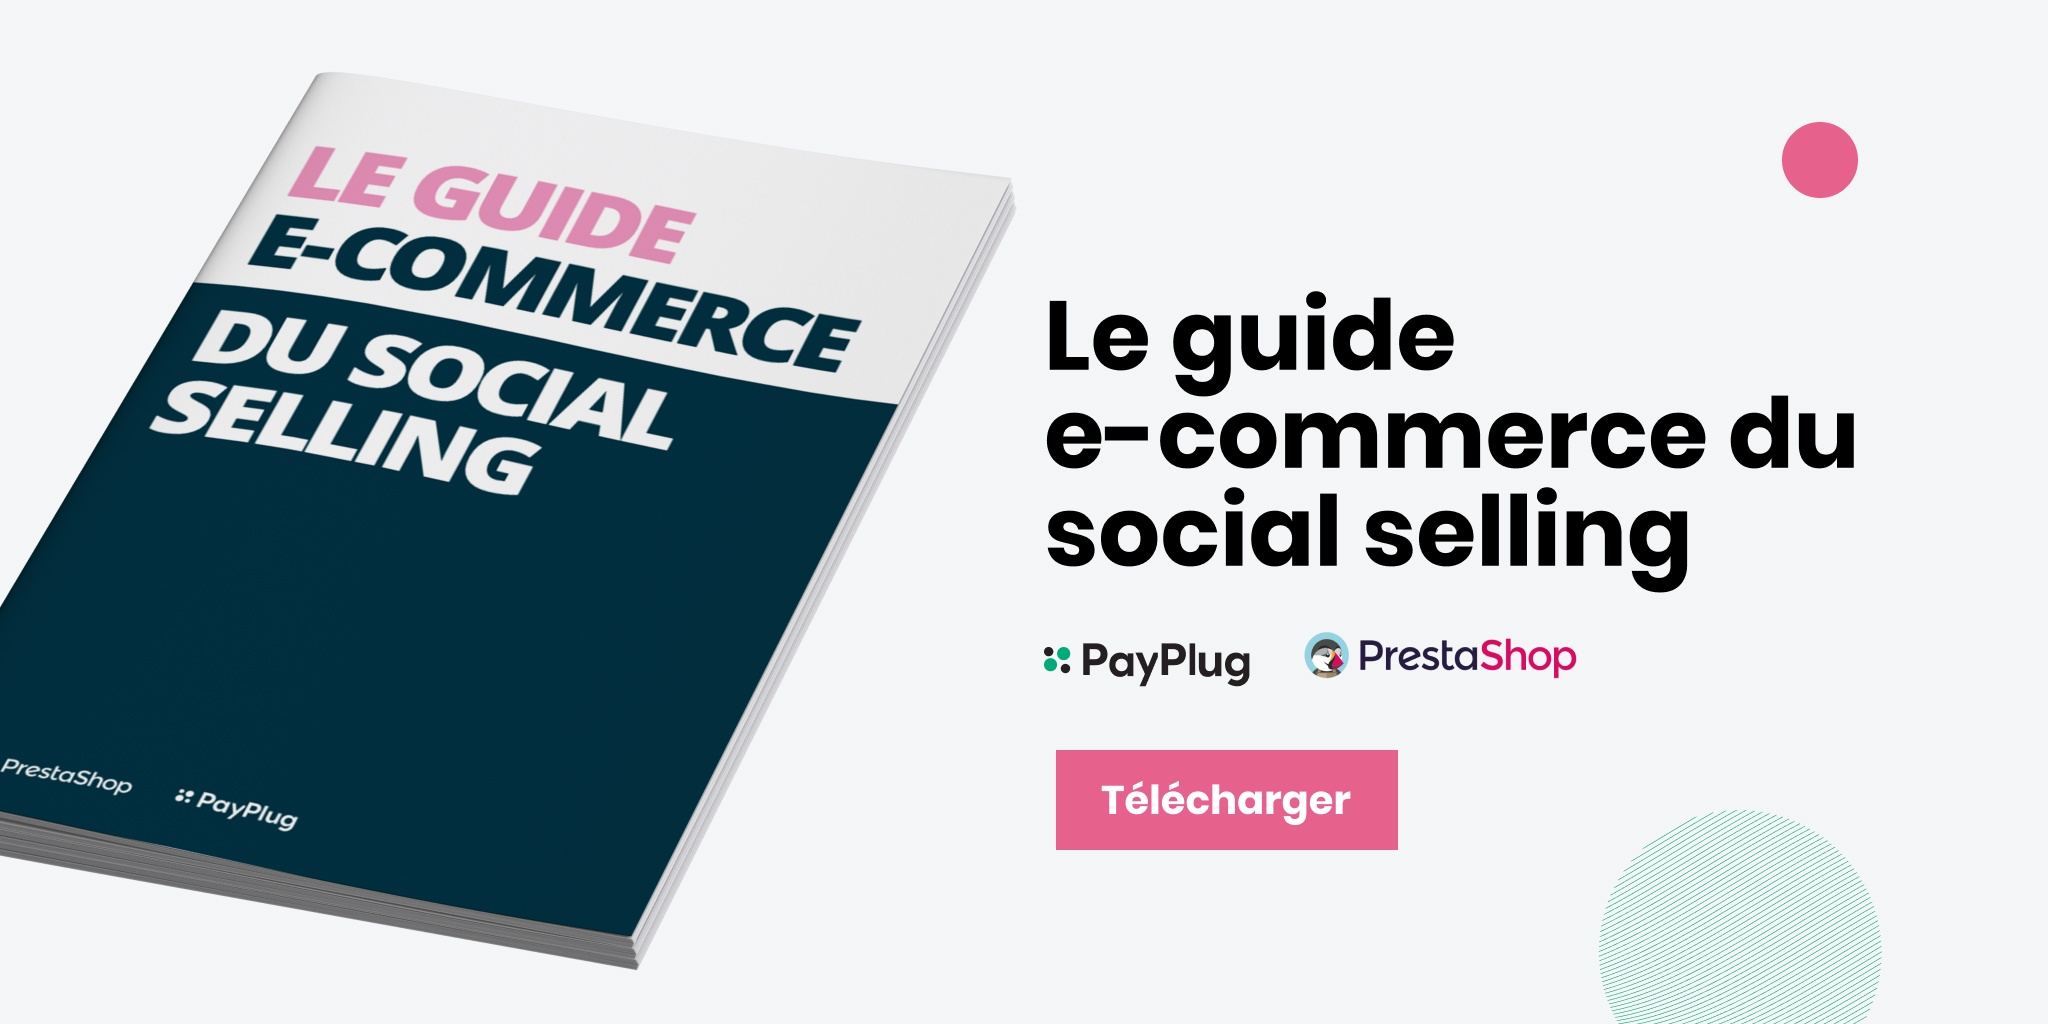 Le guide e-commerce du social selling